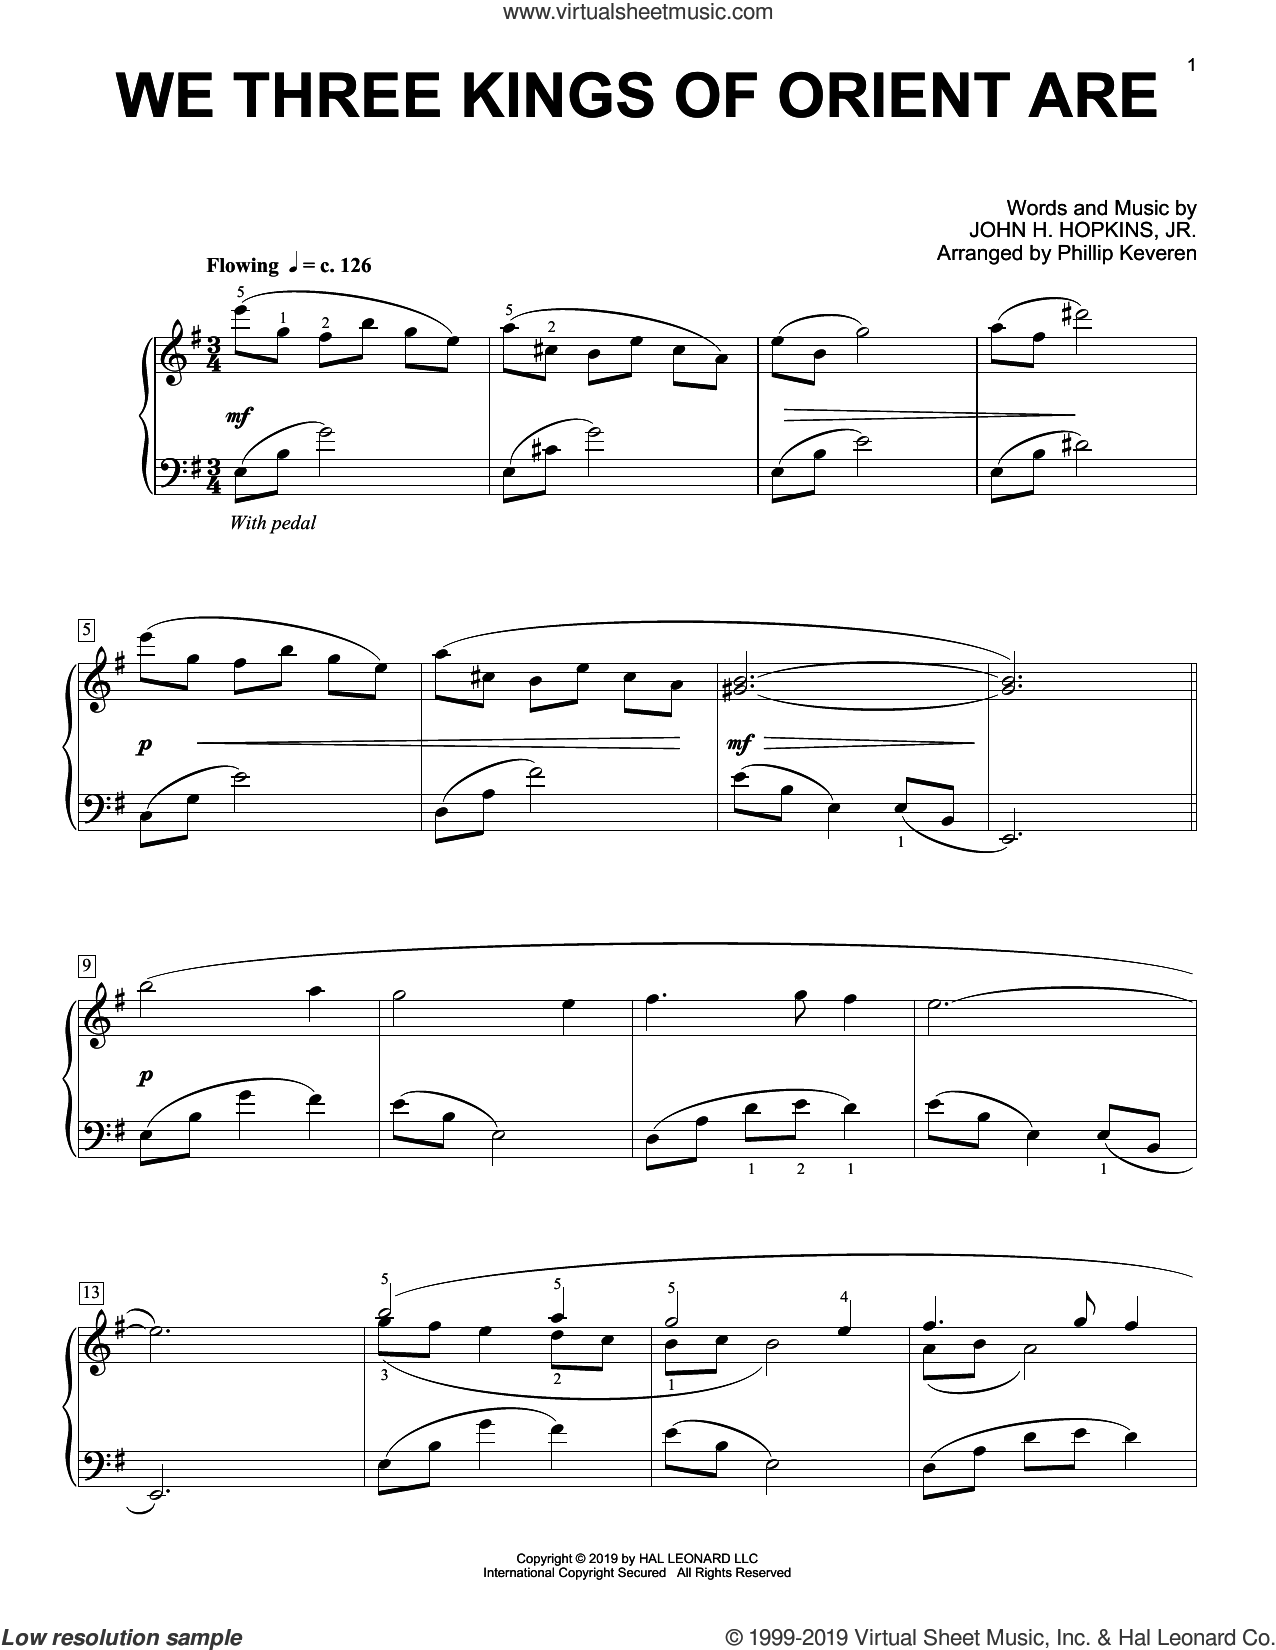 We Three Kings Of Orient Are [Classical version] (arr. Phillip Keveren) sheet music for piano solo by John H. Hopkins, Jr. and Phillip Keveren, intermediate skill level